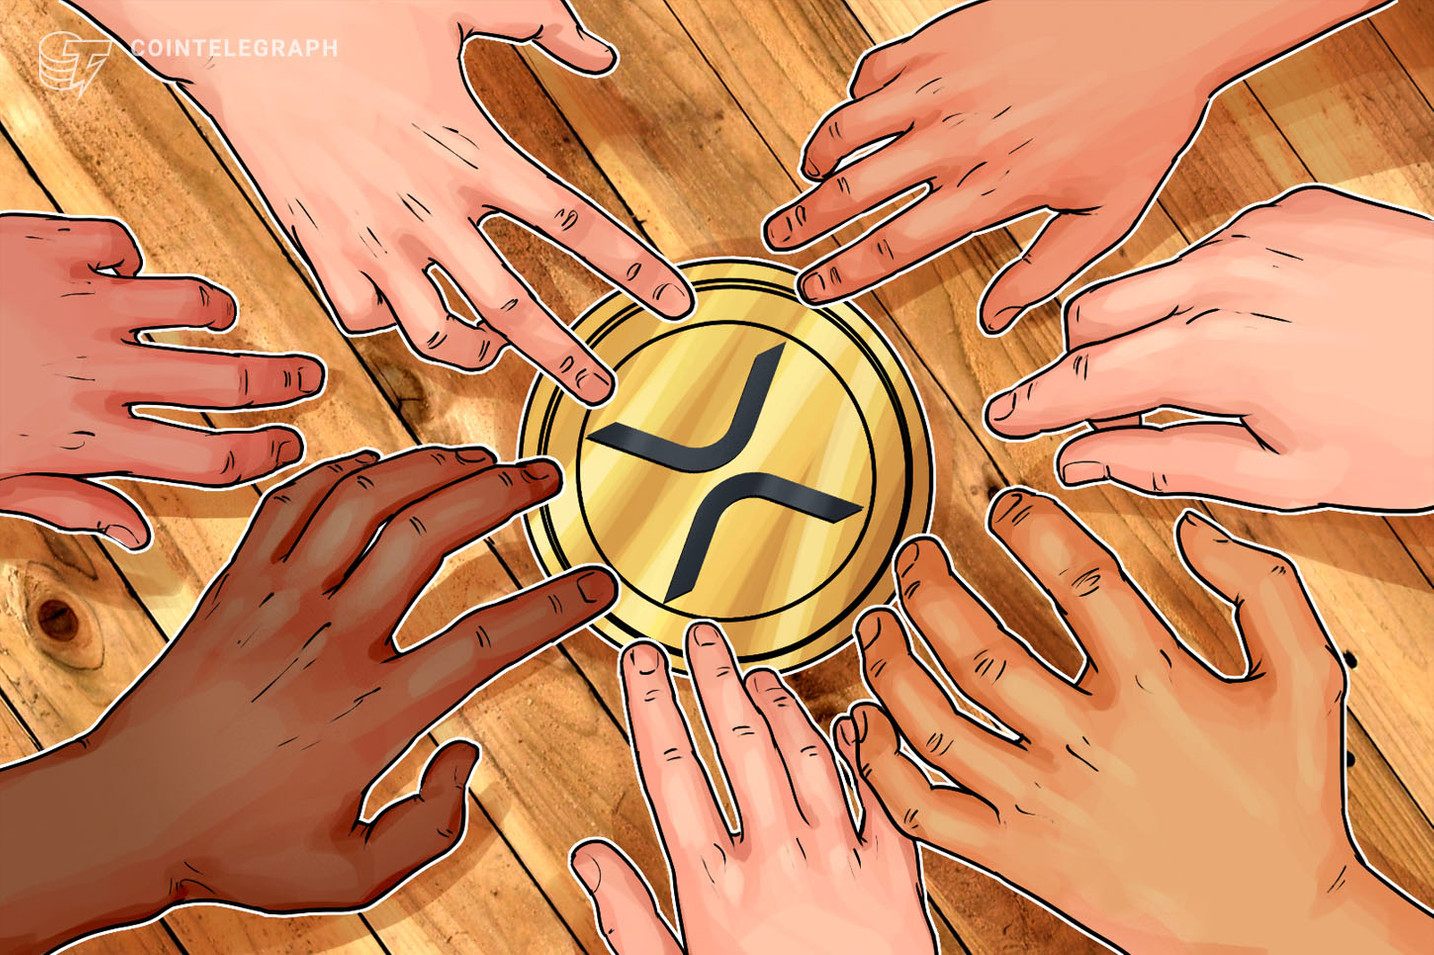 SBI Reports Financial Results, Recognizes Ripple for Cross Border Payments